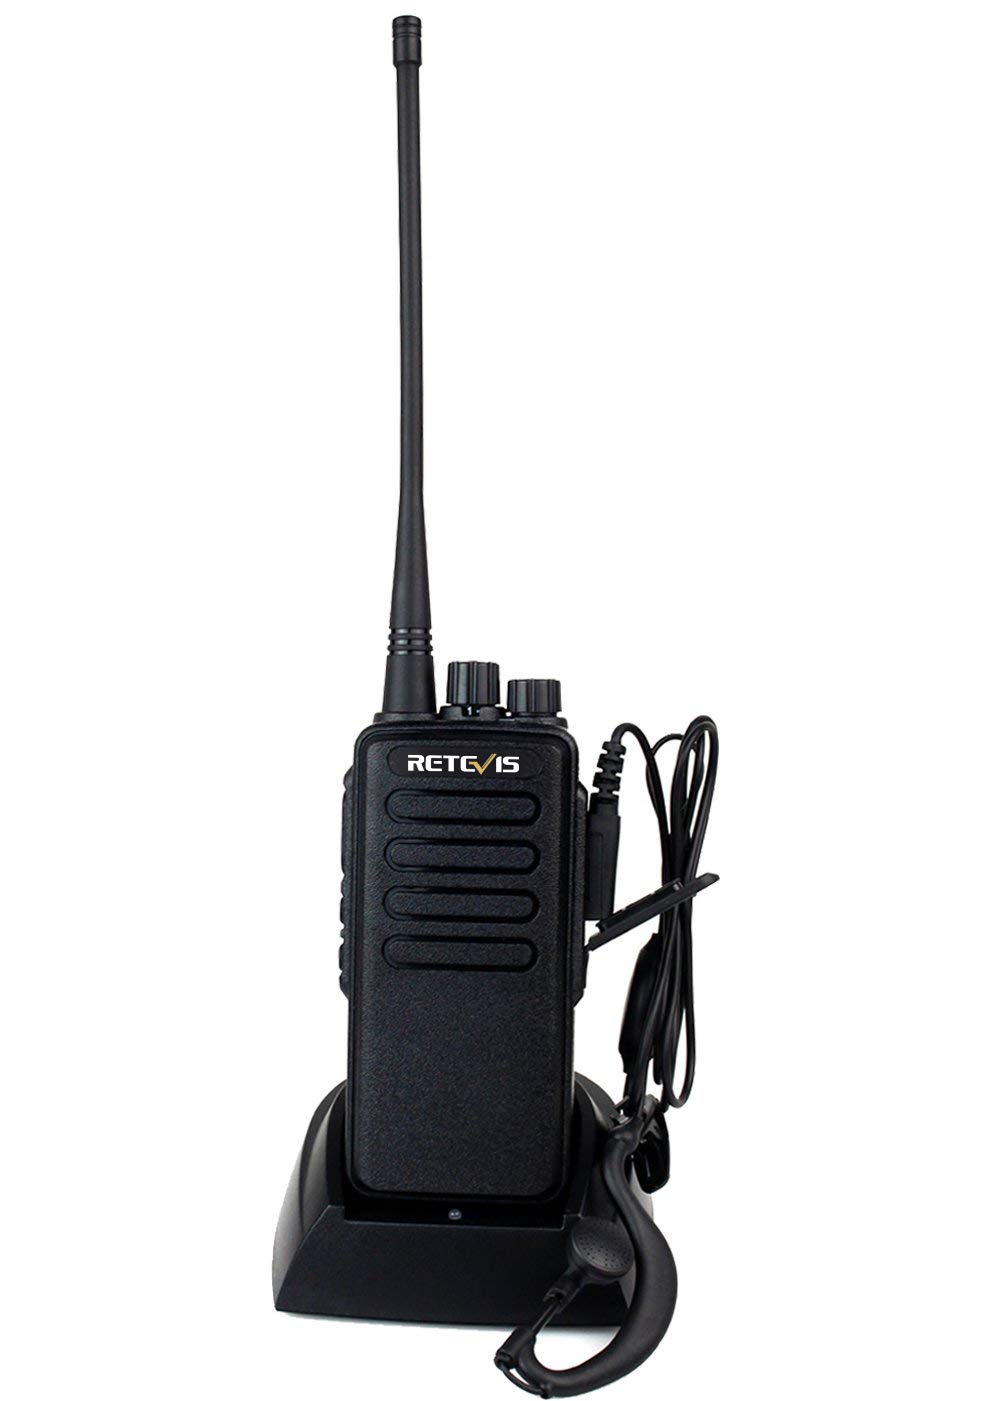 Retevis RT1 Walkie Talkie Long Range High Power UHF 16 Channel Scan VOX Encryption Two Way Radio with Earpiece (1 Pack)